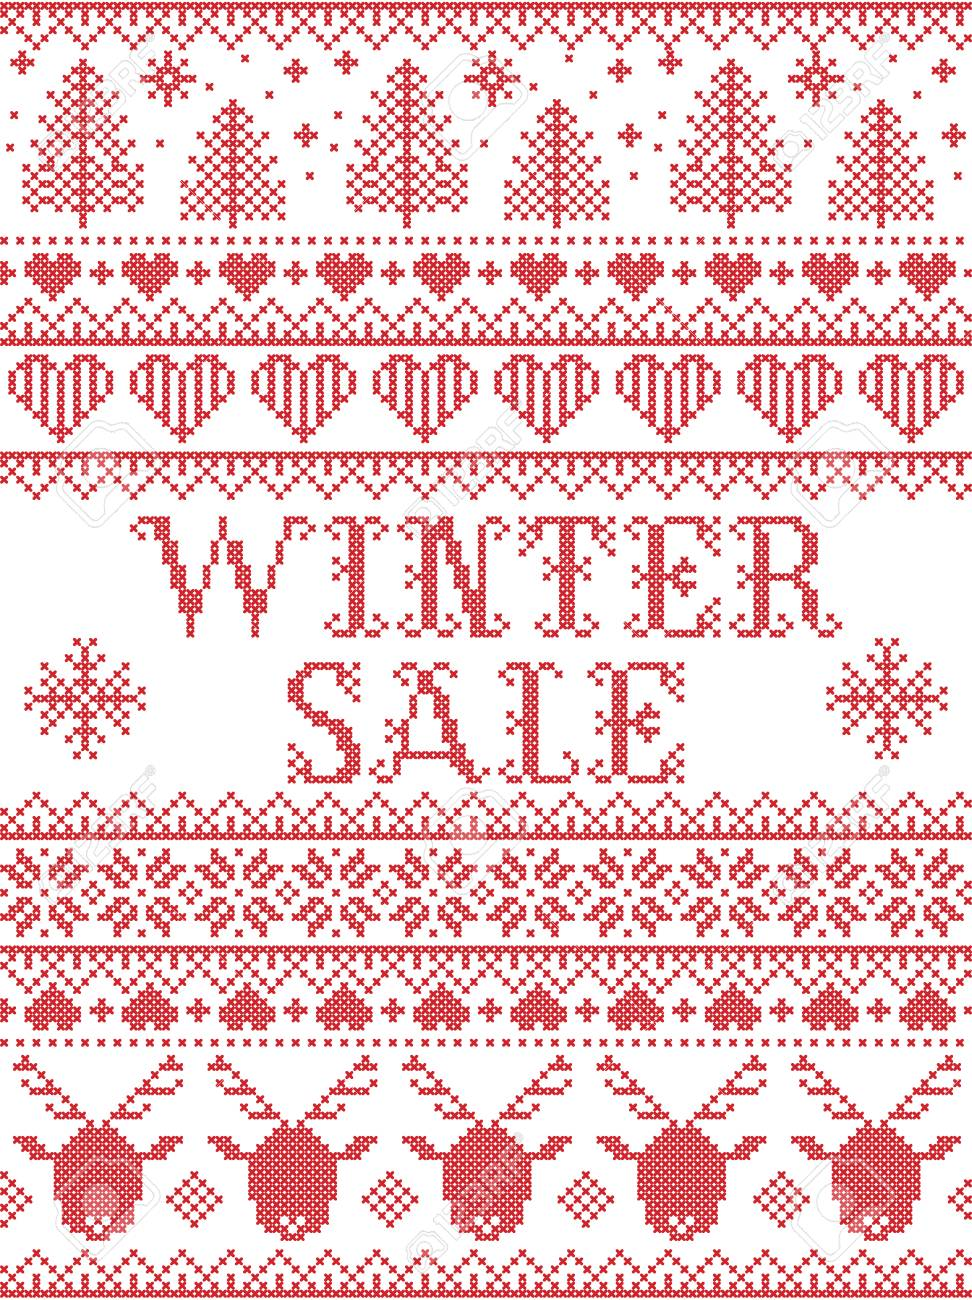 Norwegian Christmas.Seamless Winter Sale Scandinavian Style Inspired By Norwegian